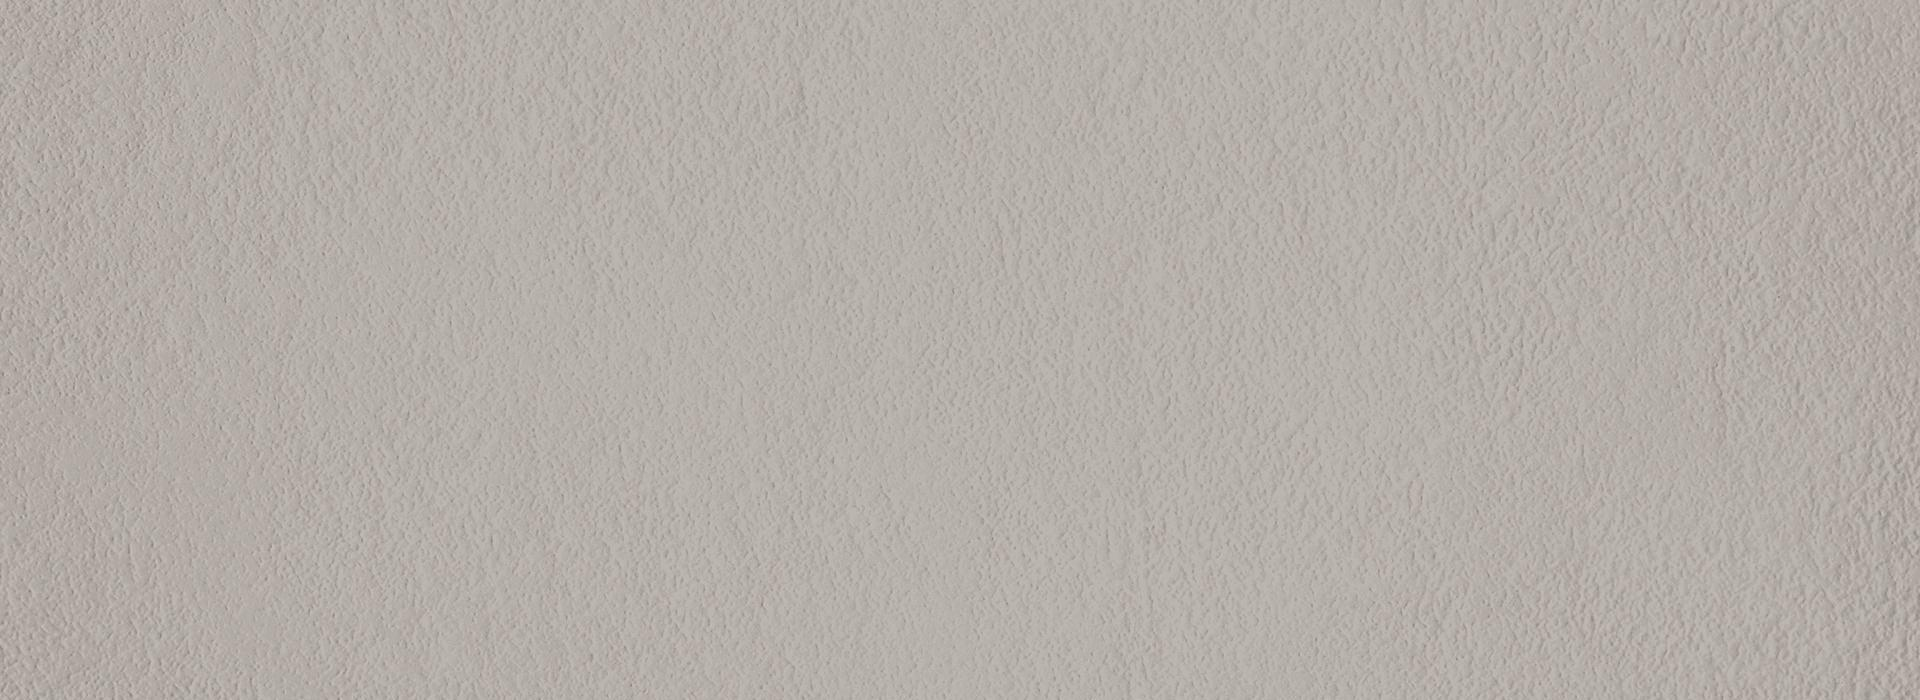 Pure Cement Grey Pure Gray Concrete Effect Floor And Wall